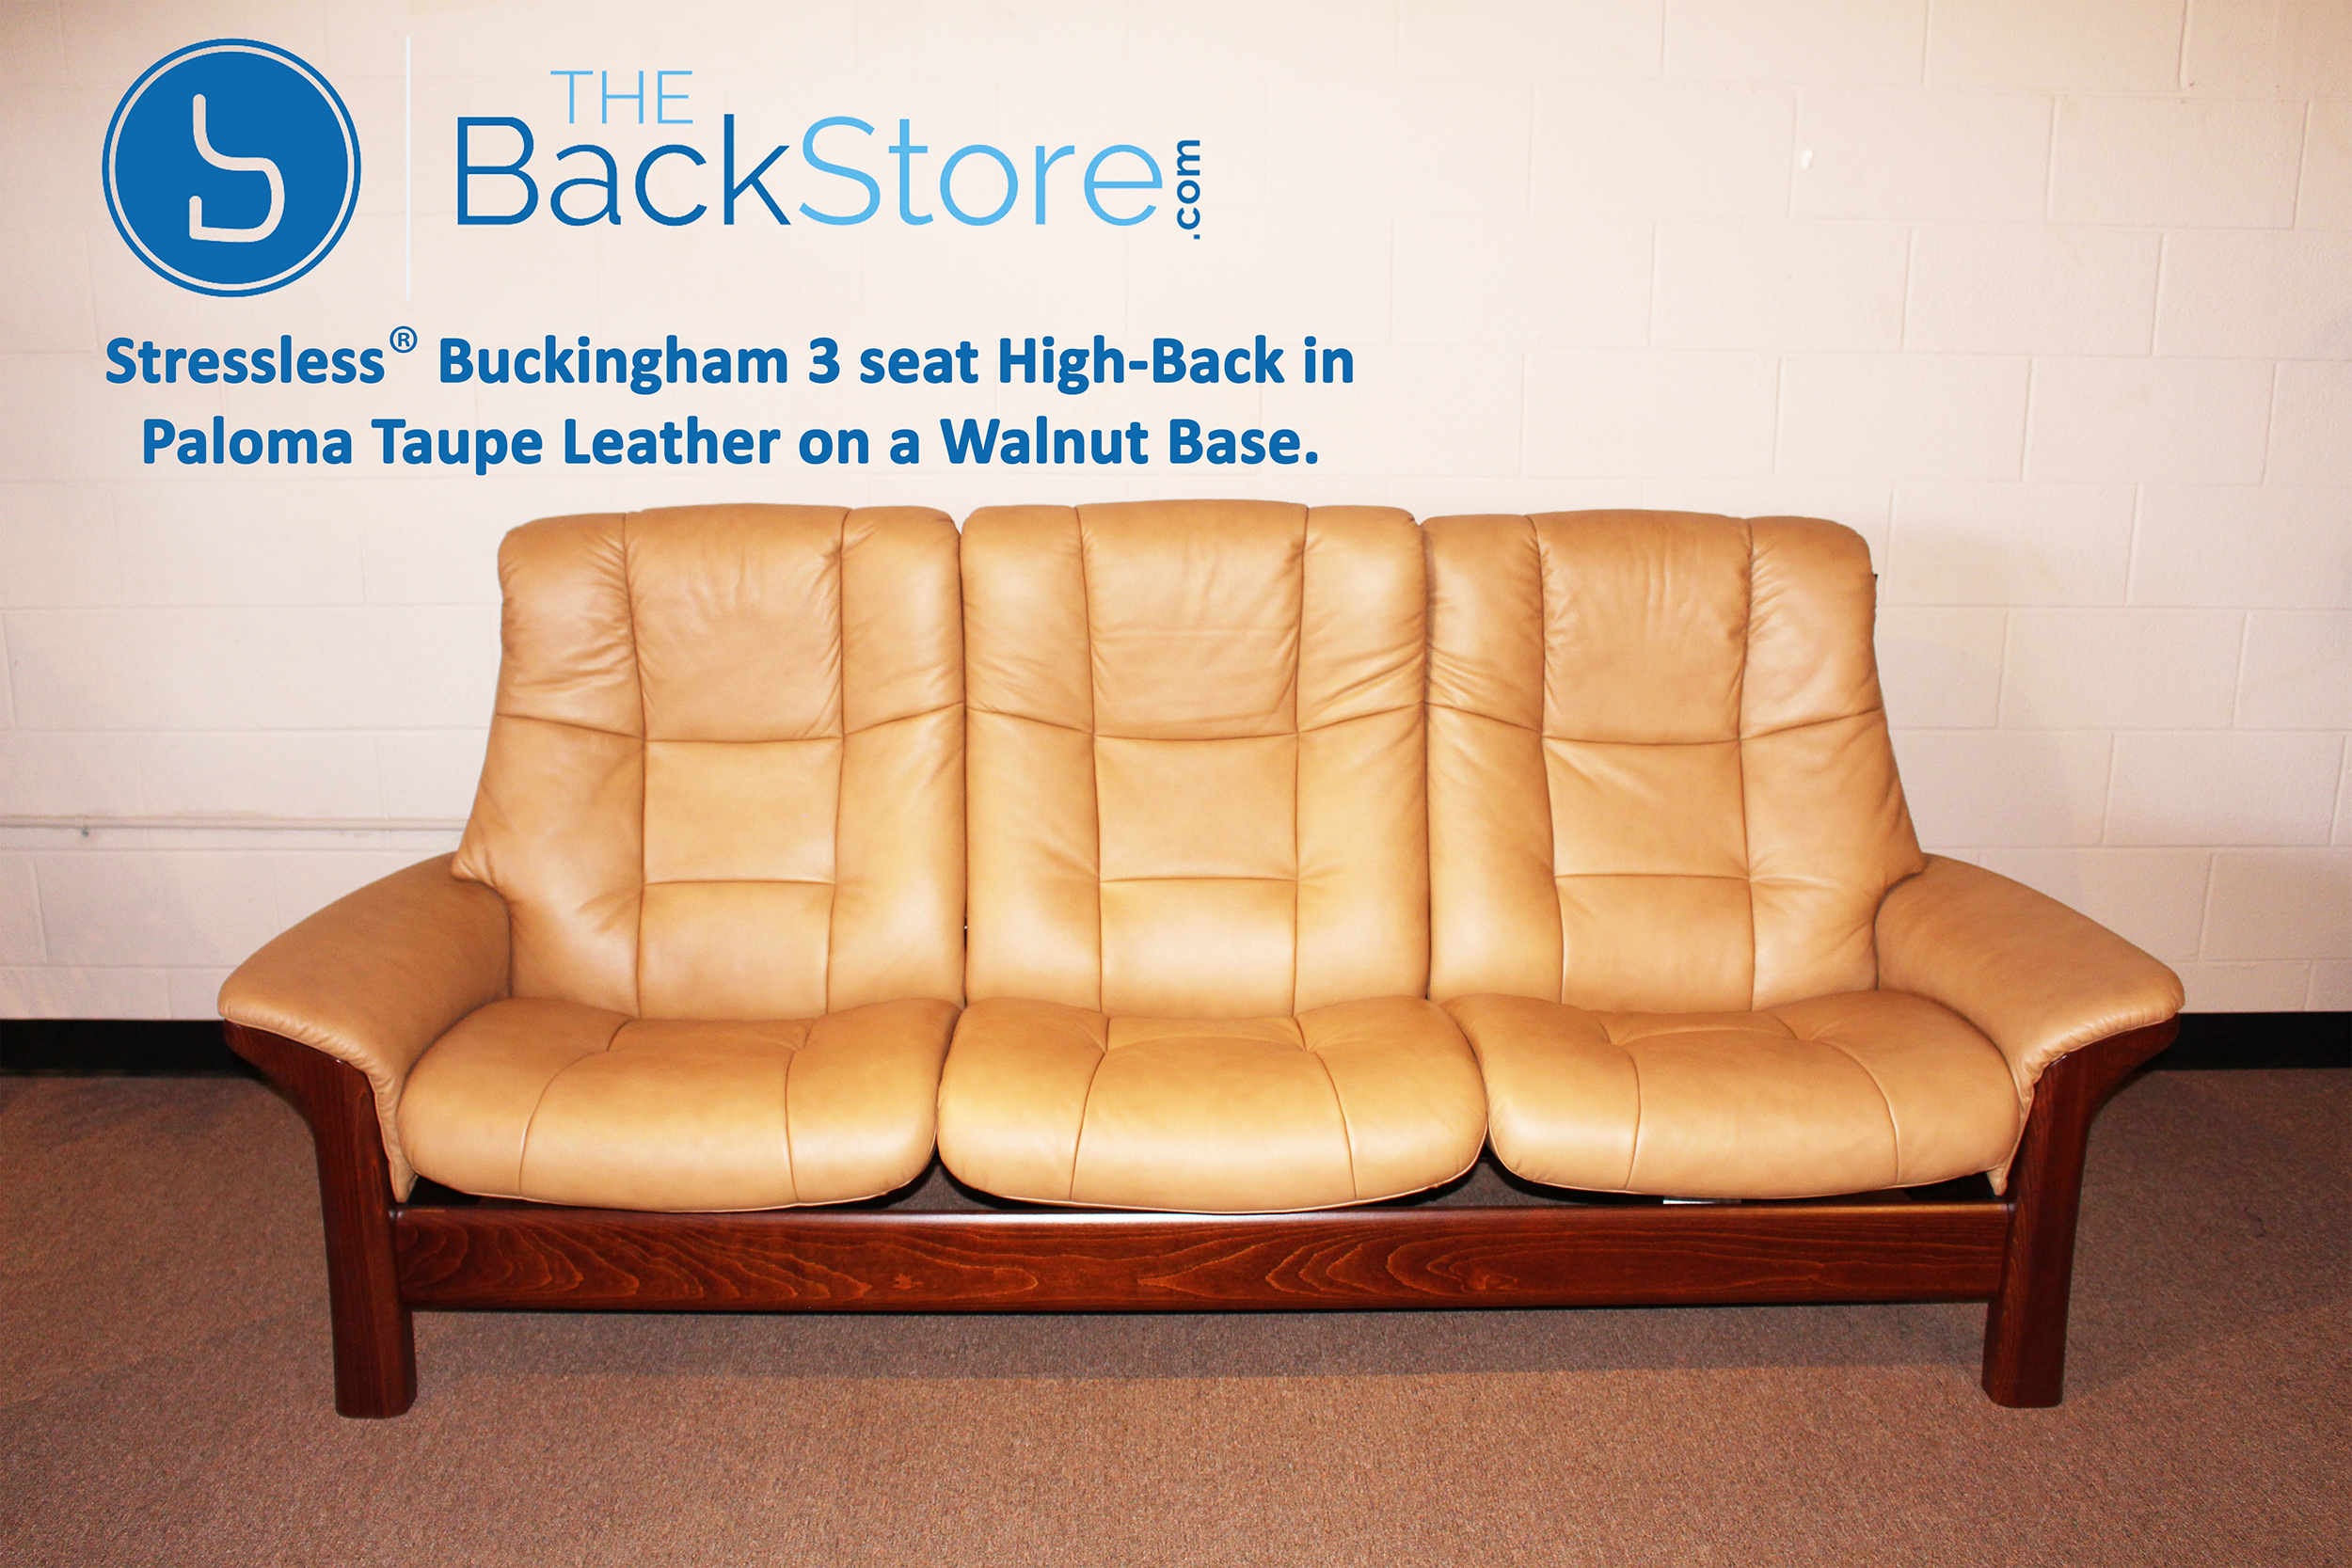 Awe Inspiring Stressless Buckingham 3 Seat High Back Sofa Paloma Taupe Color Leather By Ekornes Pdpeps Interior Chair Design Pdpepsorg